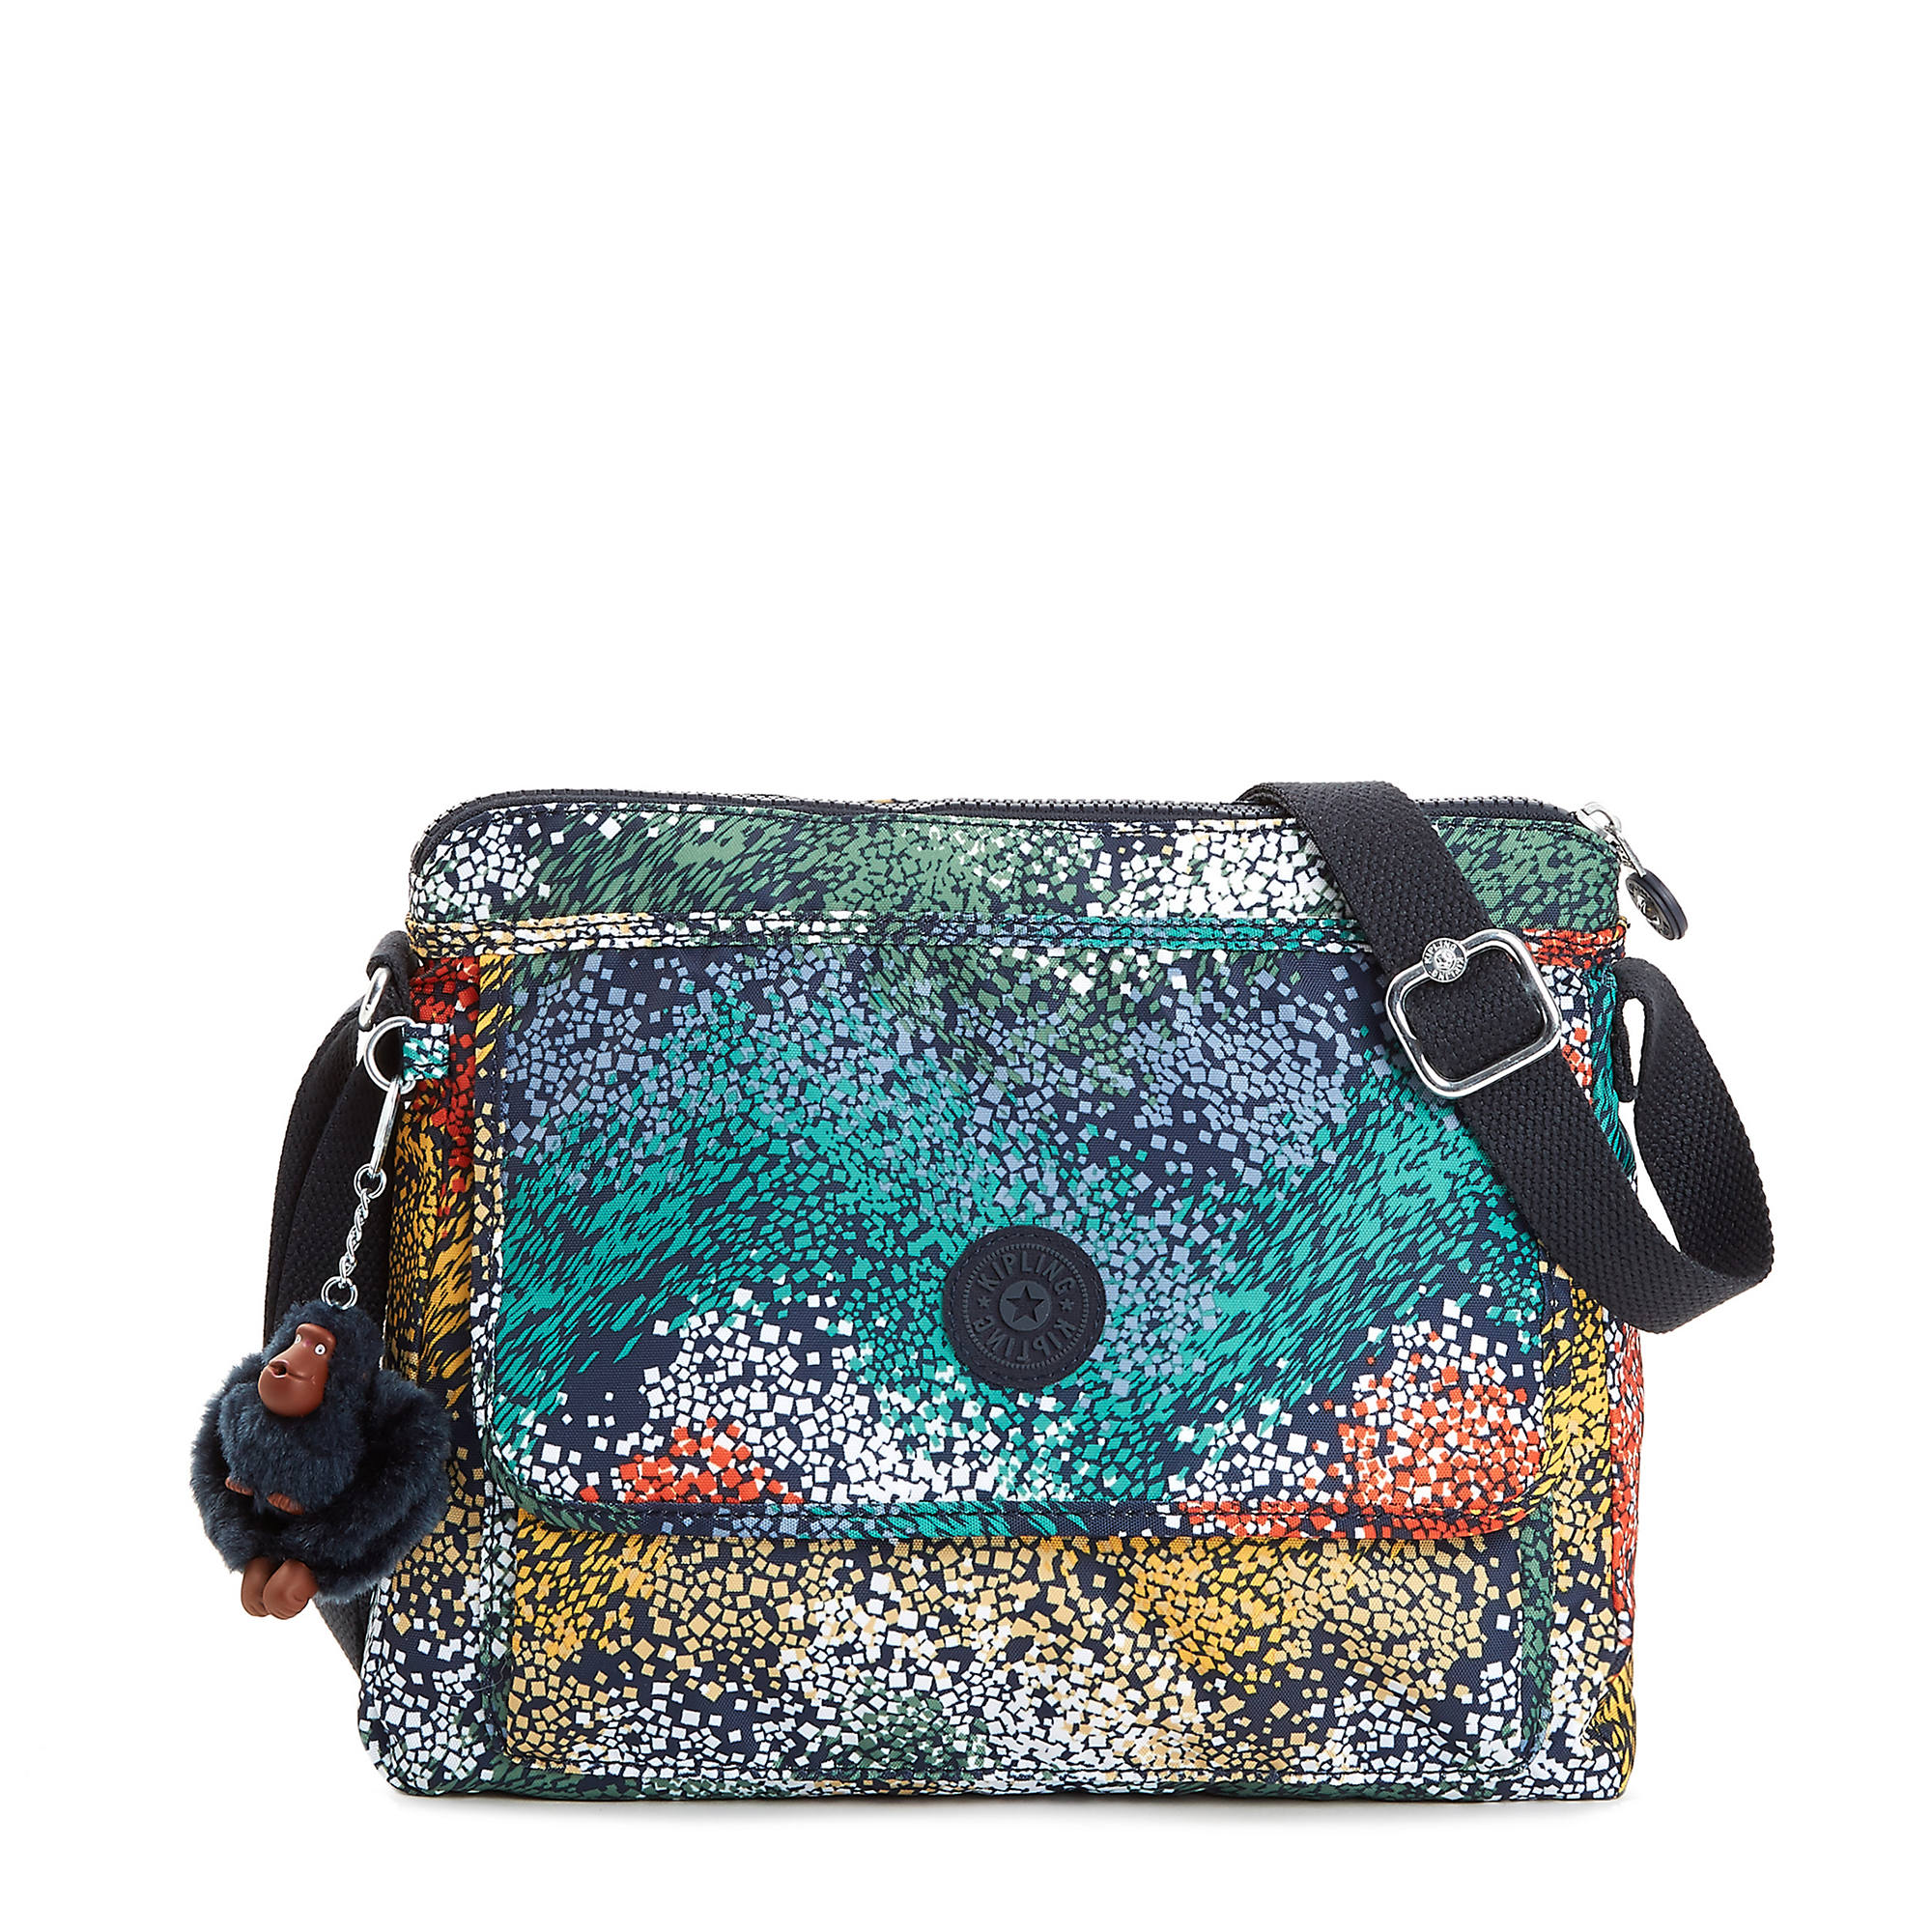 906e6ce22 Aisling Printed Crossbody Bag,Watercolor River,large